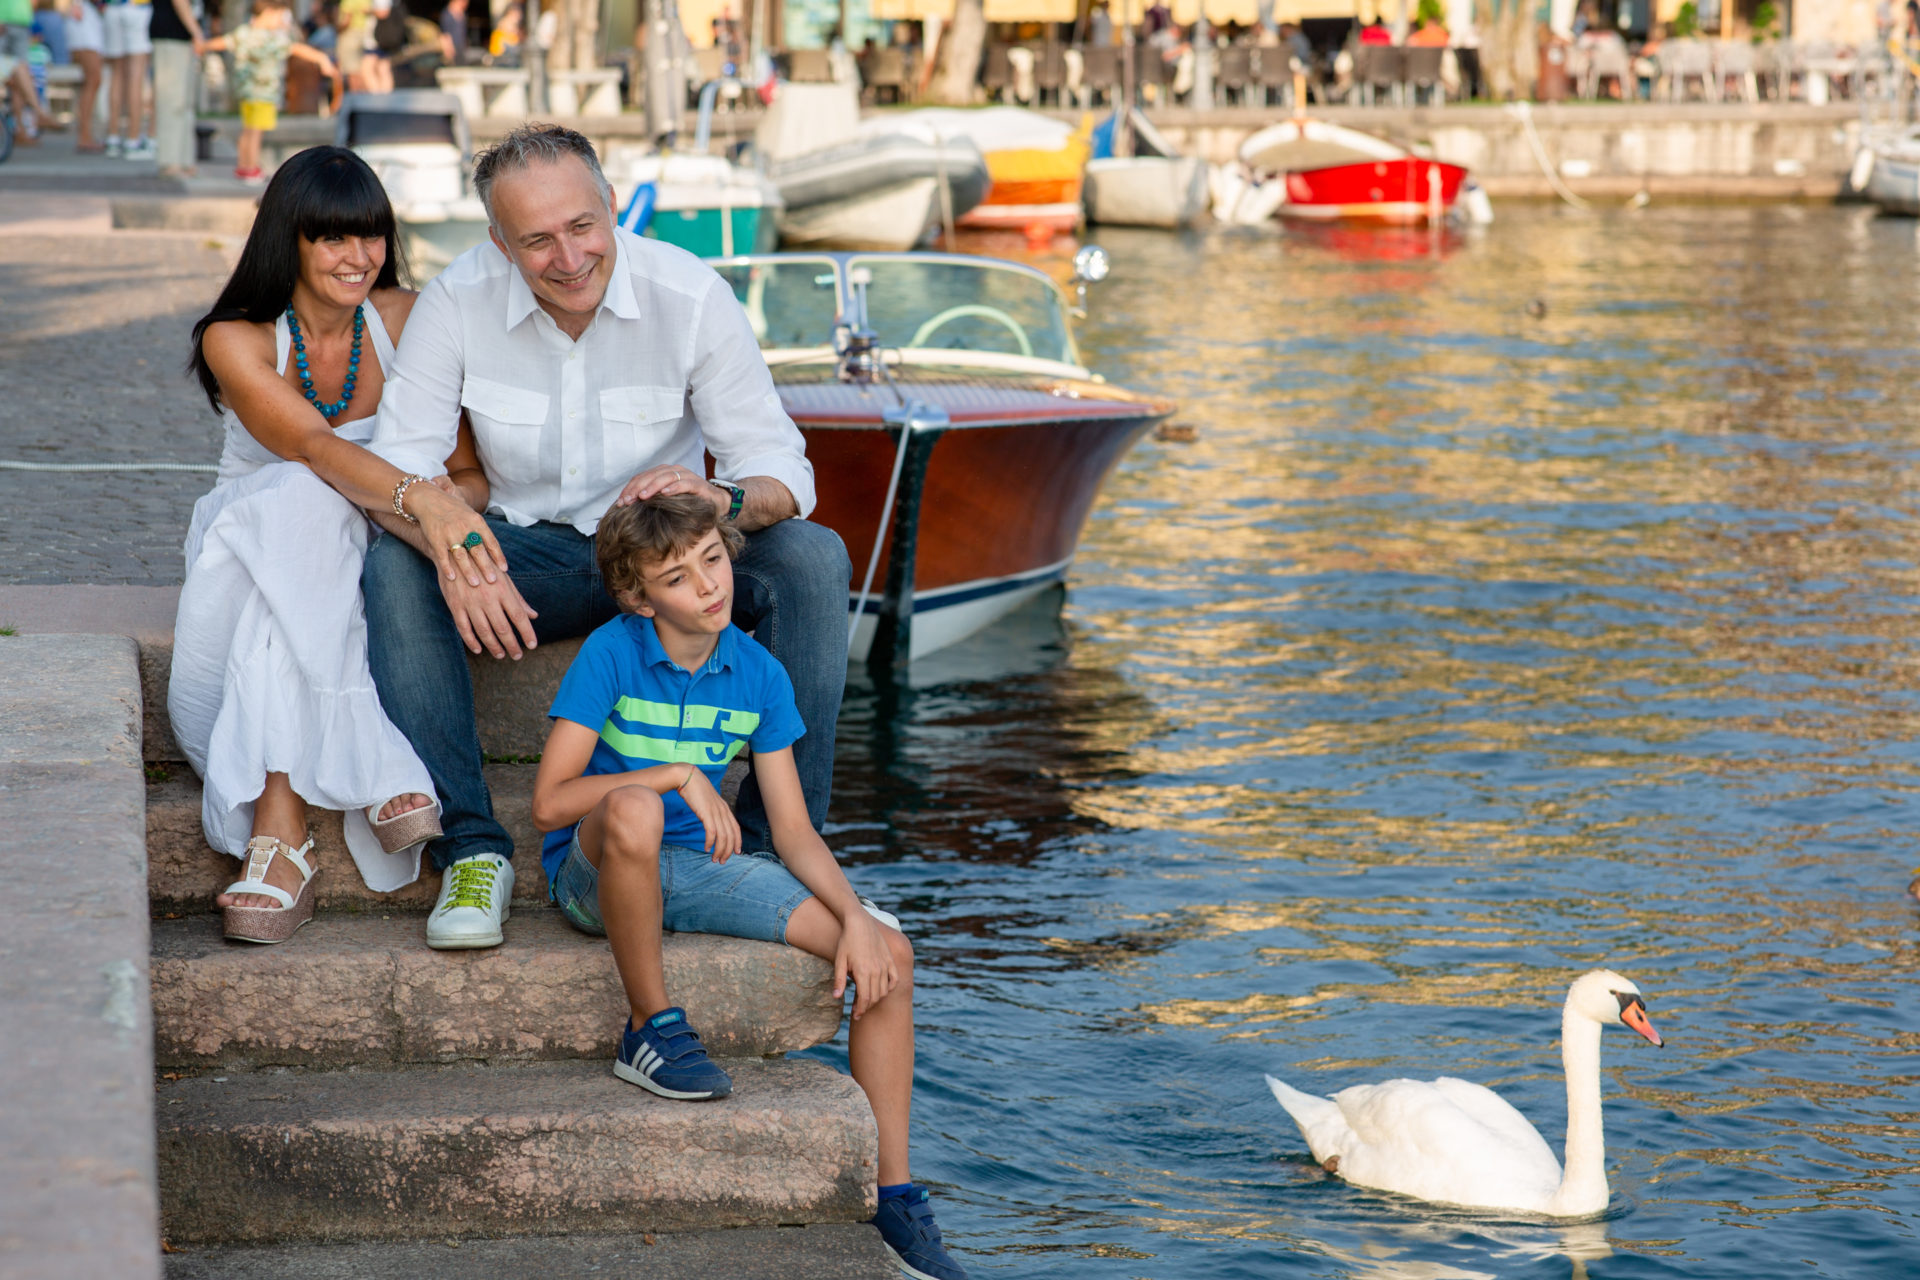 Servizi fotografici per ritratti e famiglia - Family Photos at Lake Garda with the Local Photographer